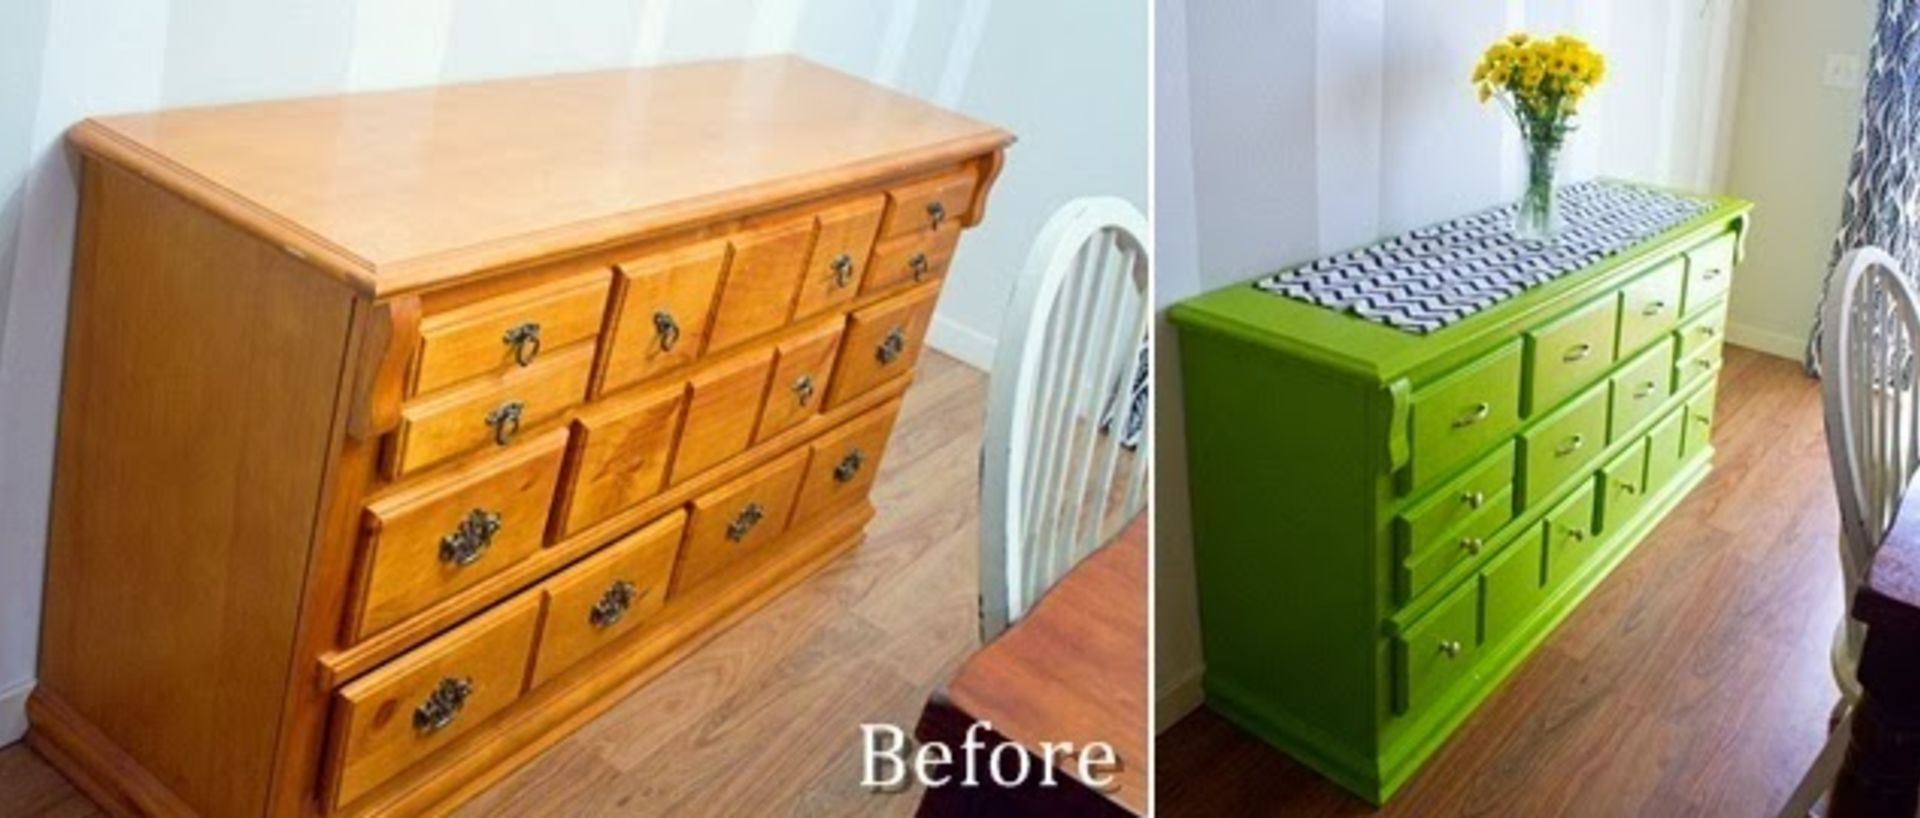 How to Save Money by Refurbishing